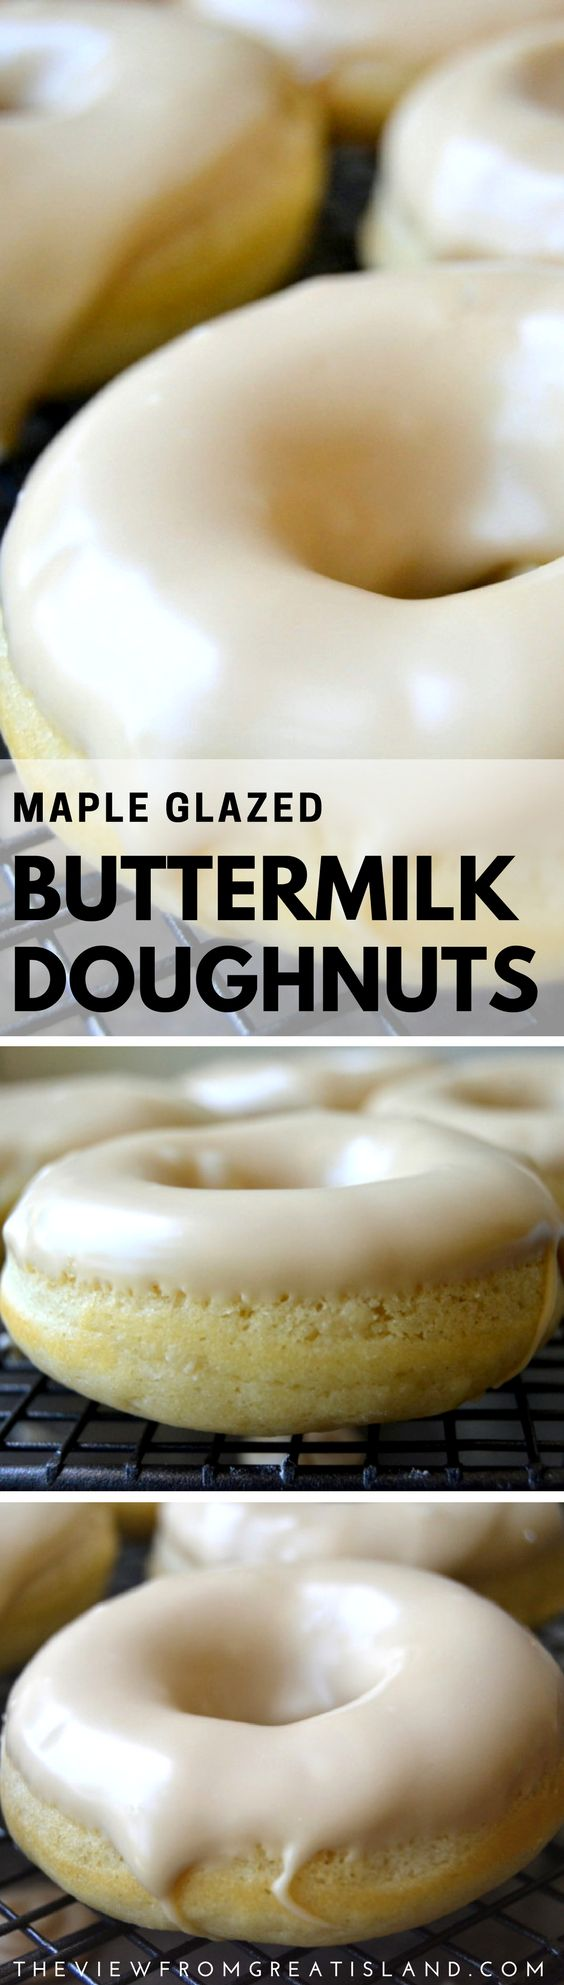 One-Bowl Maple Glazed Buttermilk Doughnuts ~ the best invention since sliced bread! These super easy baked doughnuts are so much healthier than traditional deep fried, too, so go ahead, indulge! #doughnuts #mapleglaze #buttermilkdoughnuts #homemadedoughnuts #bakeddoughnuts #maple #dessert #breakfast #sweet